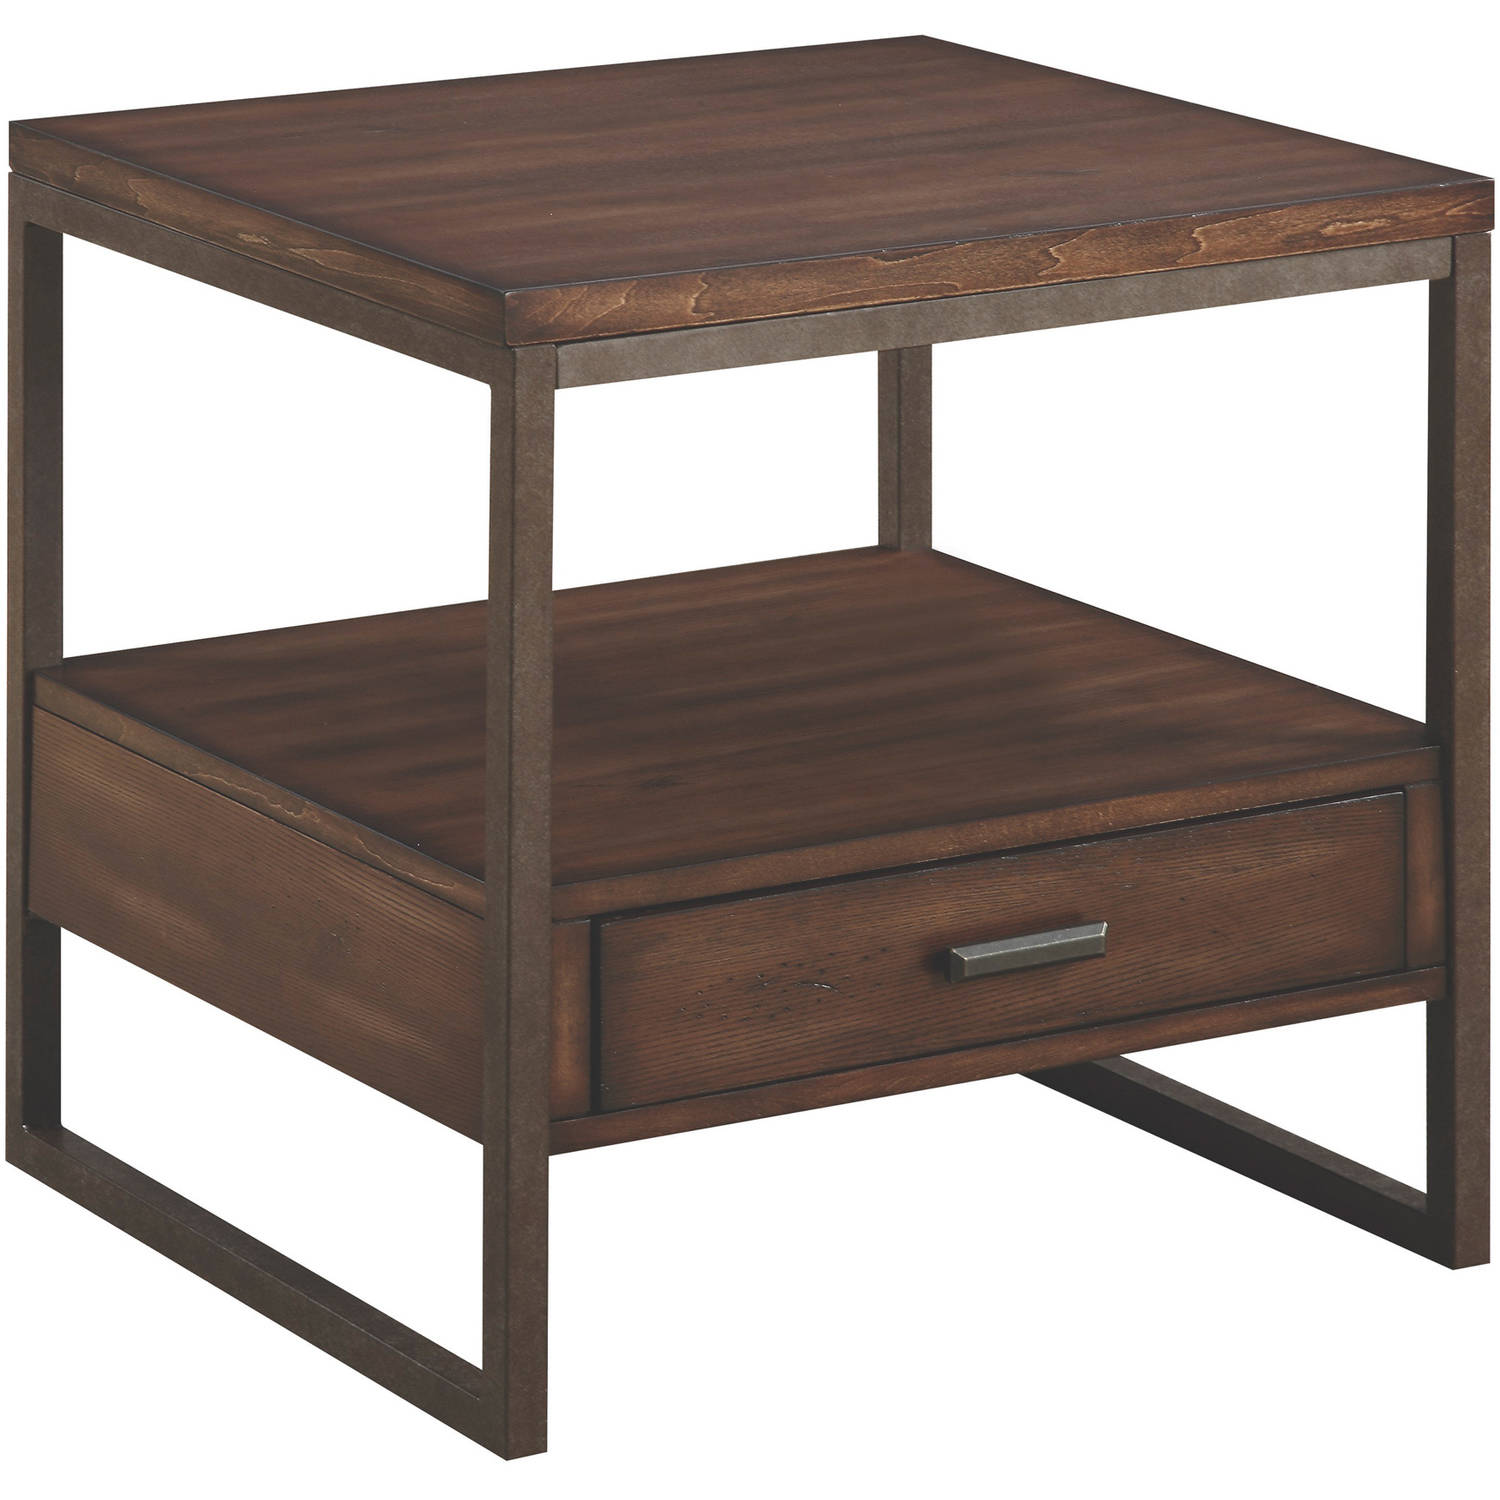 Coaster Wood & Metal End Table, light brown finish